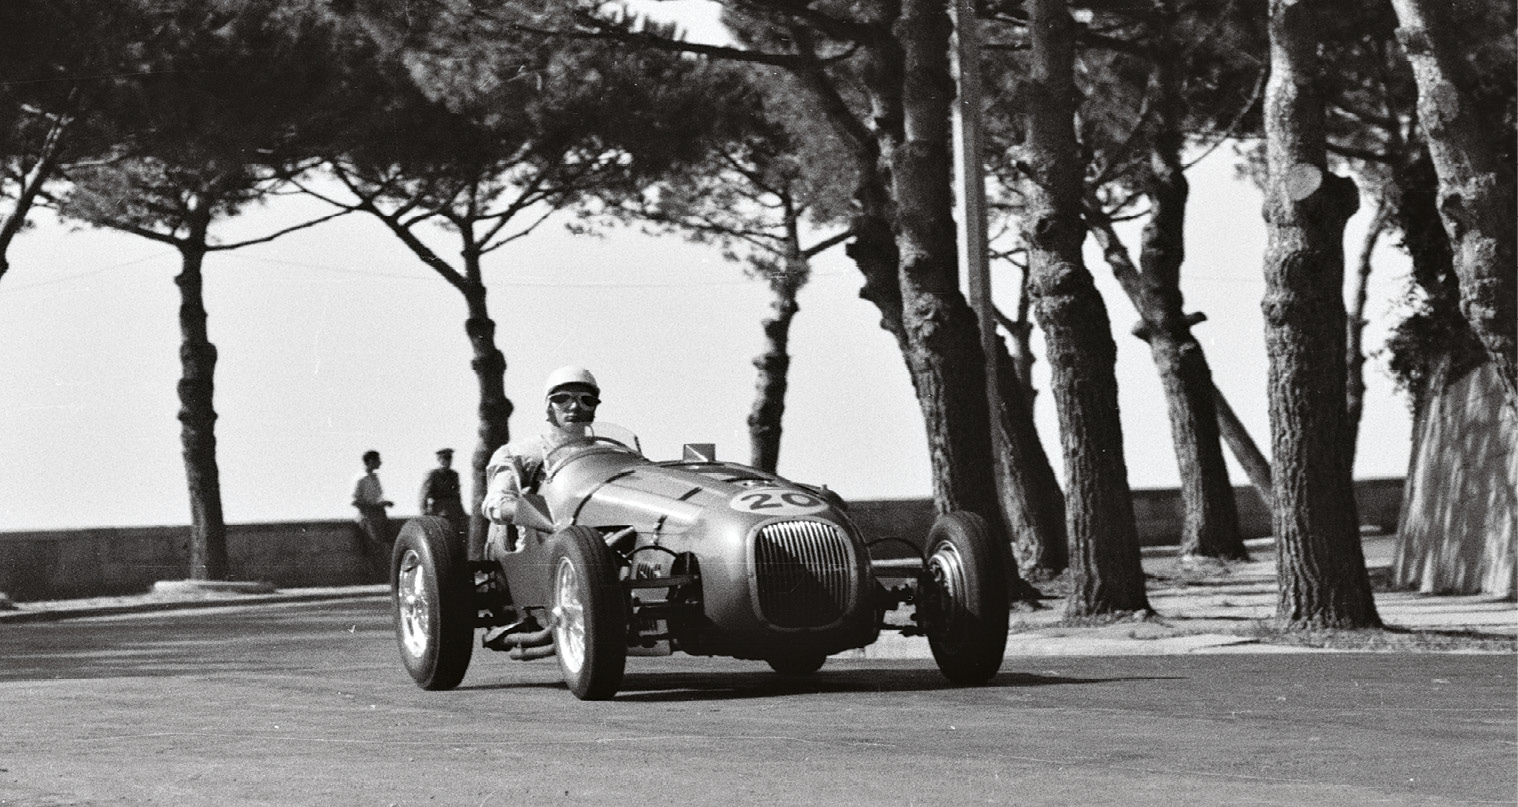 Naples 1950: Moss headed Cortese's Alfa until a major smash – but Macklin's HWM was second